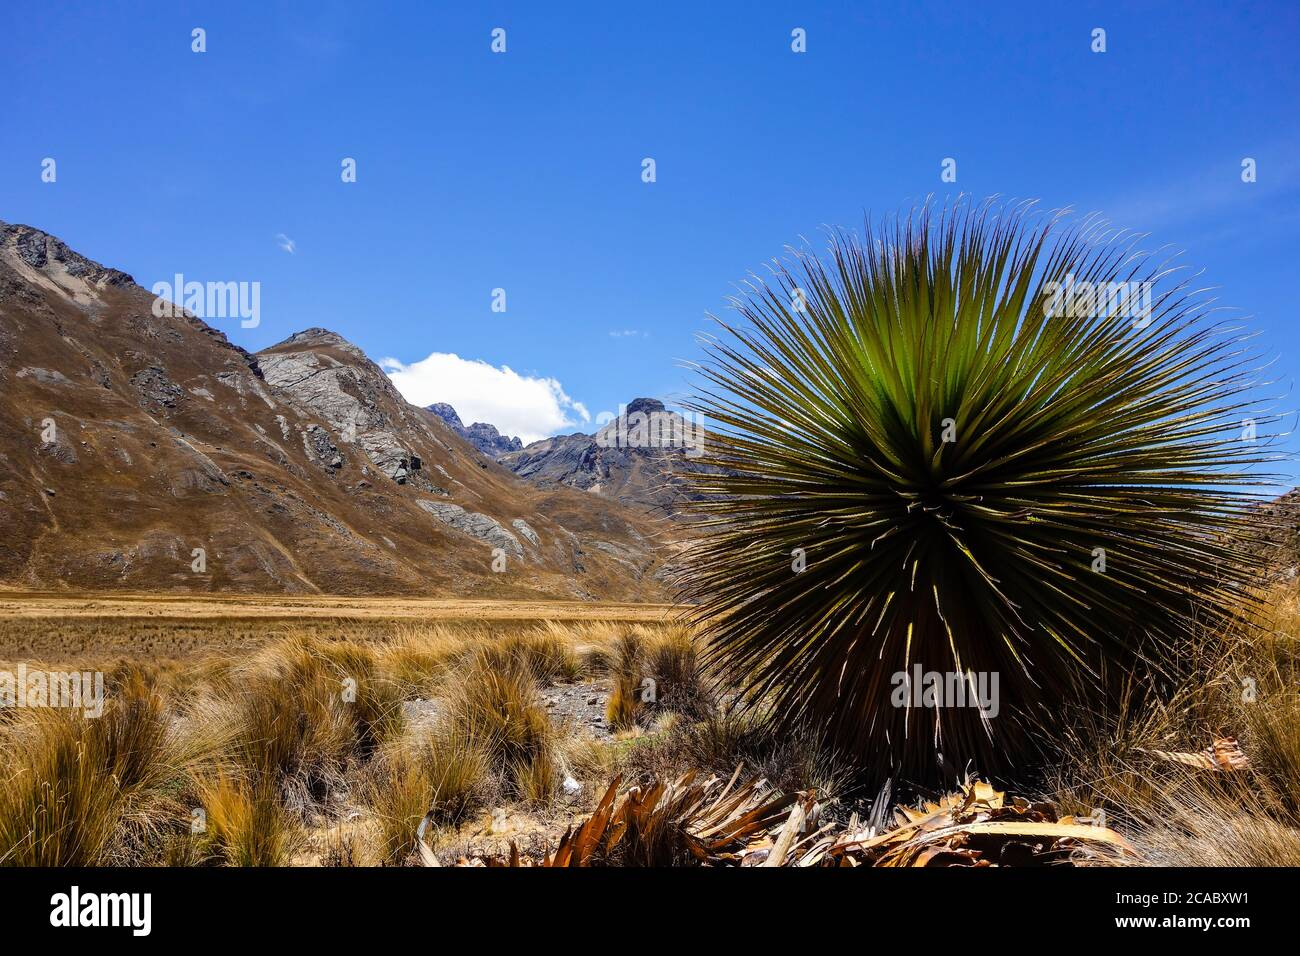 Beautiful view of the Puya Raimondii plant in the Andes, Peru Stock Photo